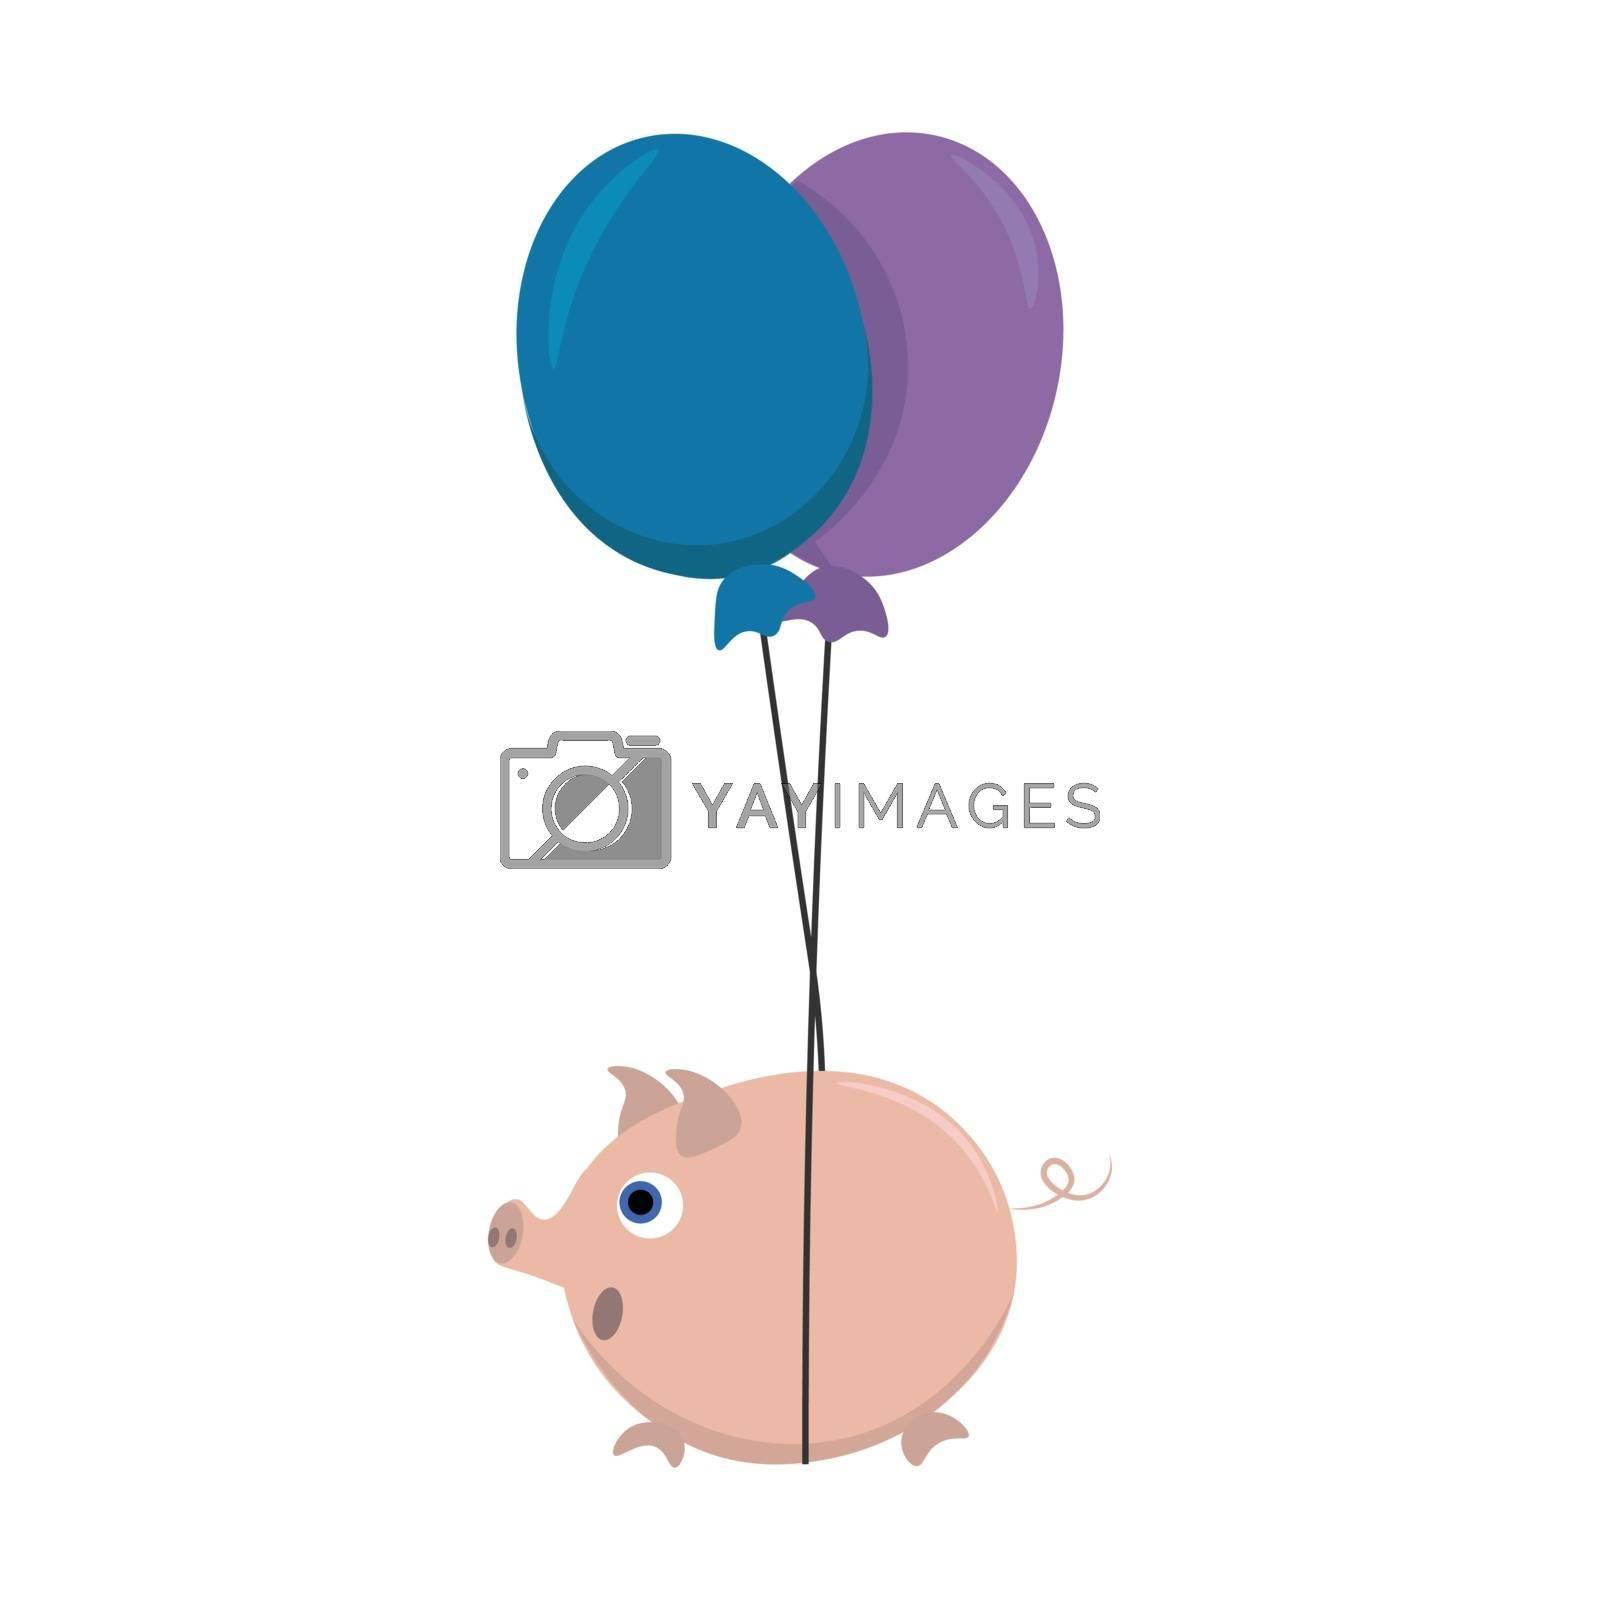 Royalty free image of Cute cartoon picture of a fat pig tied to the strings of two bal by Morphart